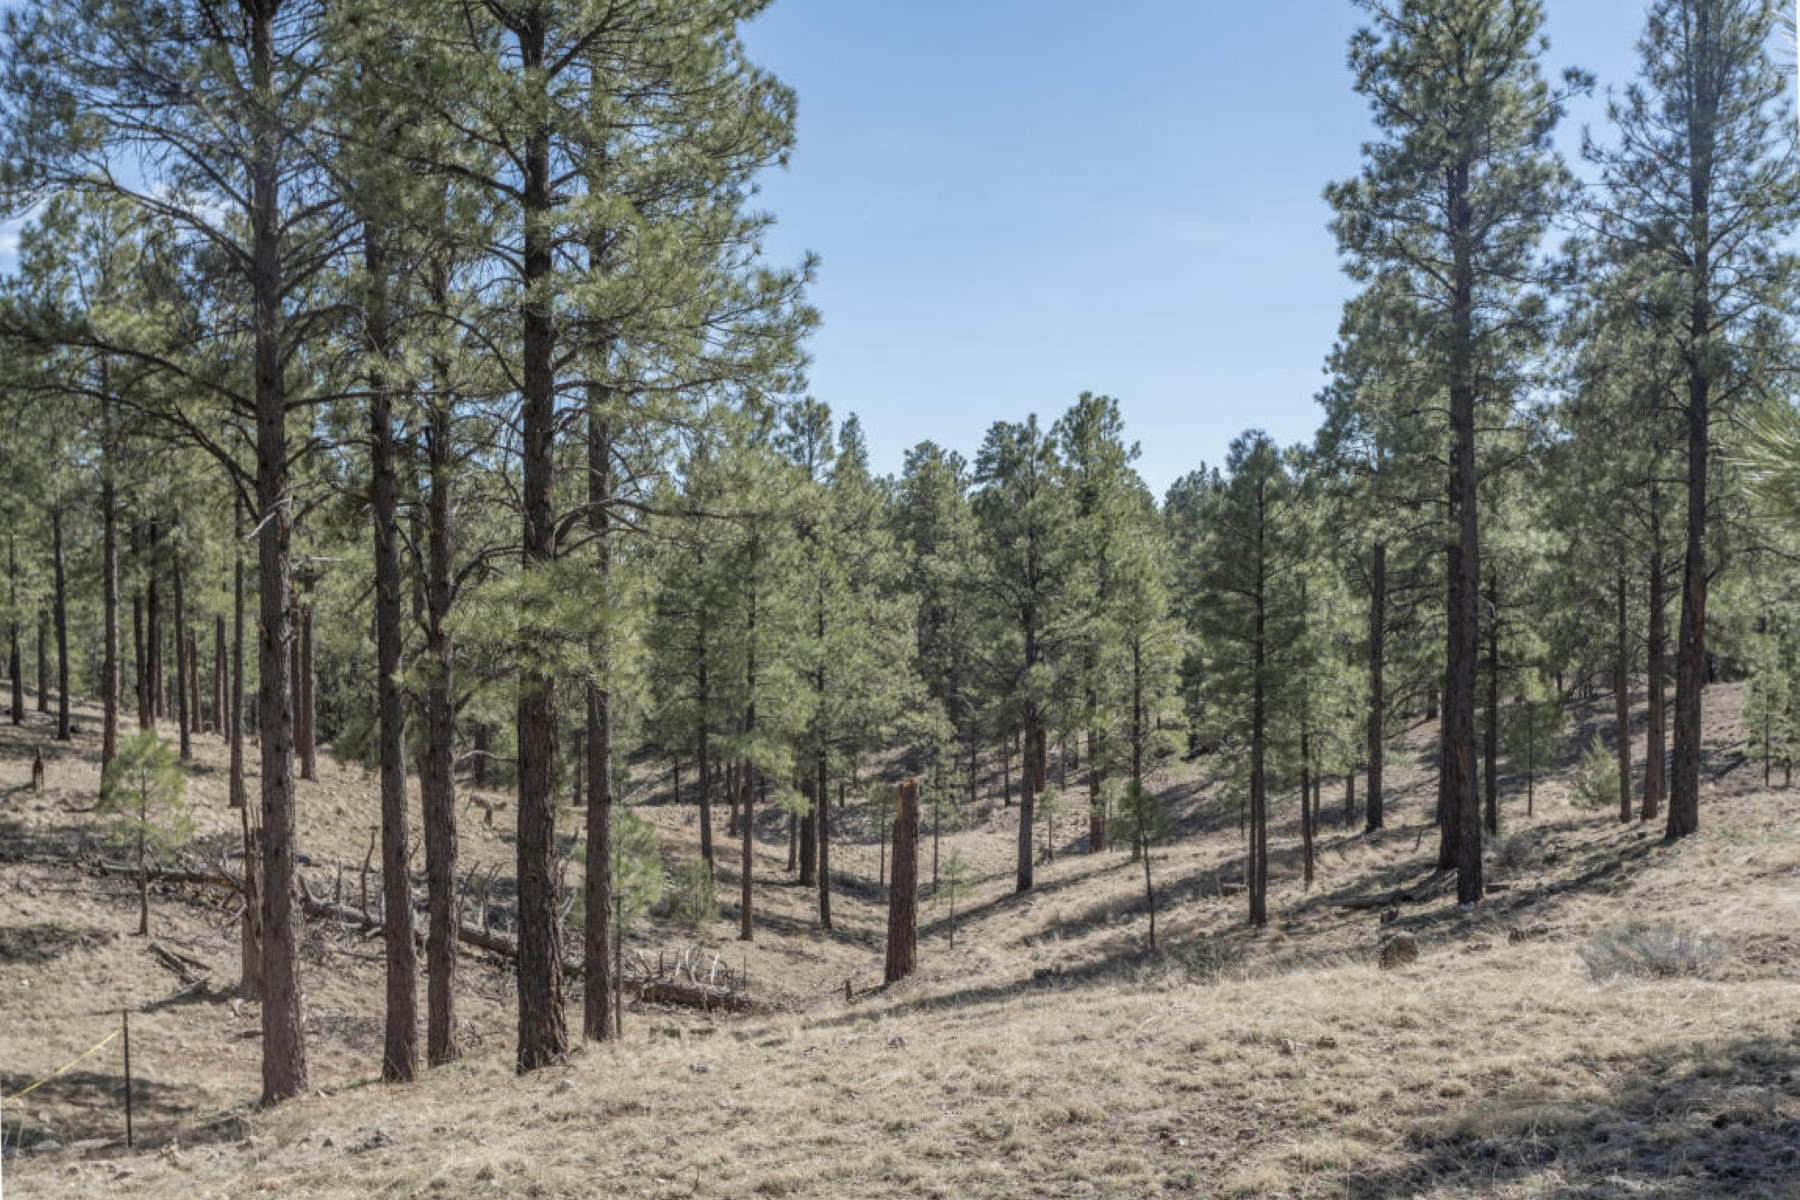 Land for Sale at Highly sought after community of Pine Canyon 2431 E Del Rae Dr #181 Flagstaff, Arizona, 86001 United States